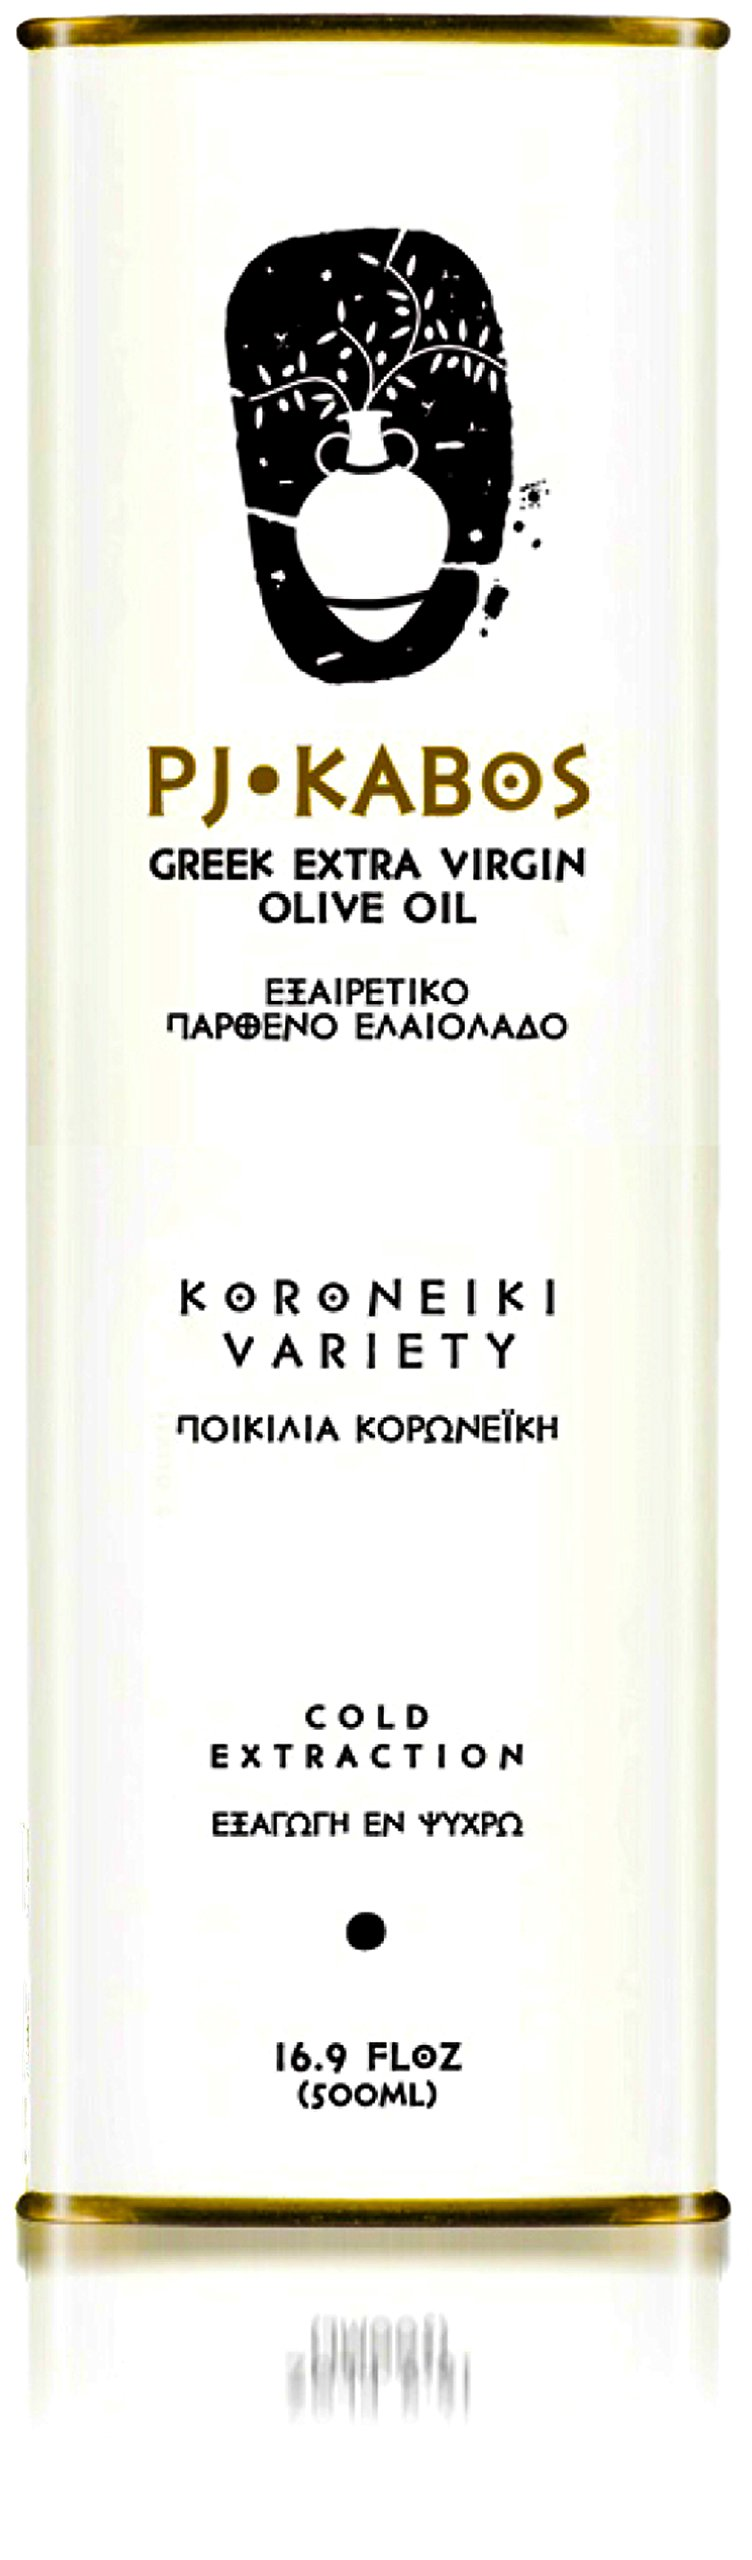 2018 GOLD Medal Winner PJ KABOS 16.9Floz Greek Extra Virgin Olive Oil | 100% FRESH olive oil born in Ancient Olympia vicinity and sent via AIR to the USA| From Greece | KORONEIKI Variety |